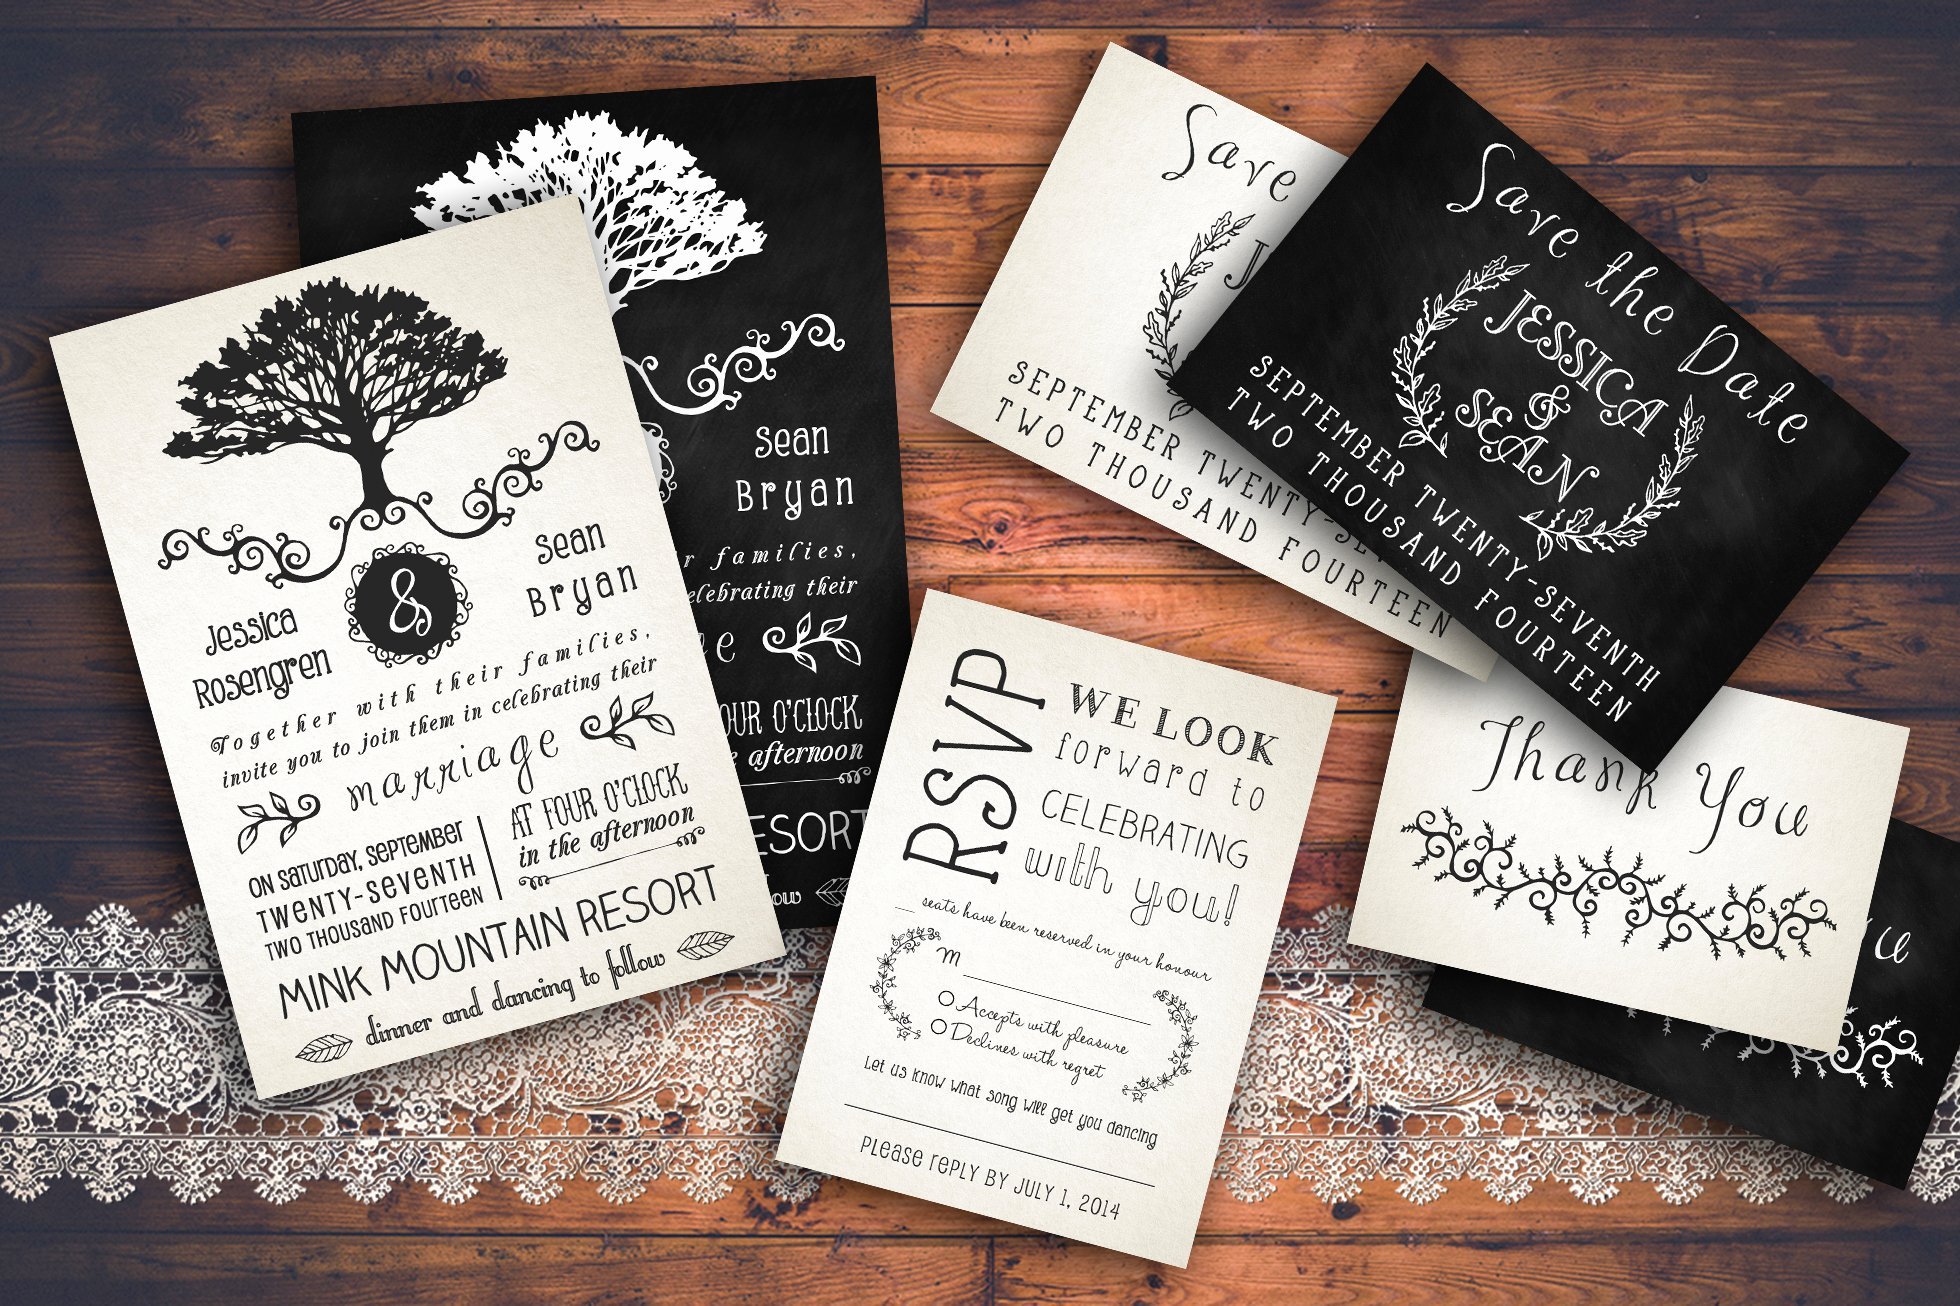 Rustic Wedding Invitations Templates Lovely Rustic Wedding Invitation Pack Invitation Templates On Creative Market